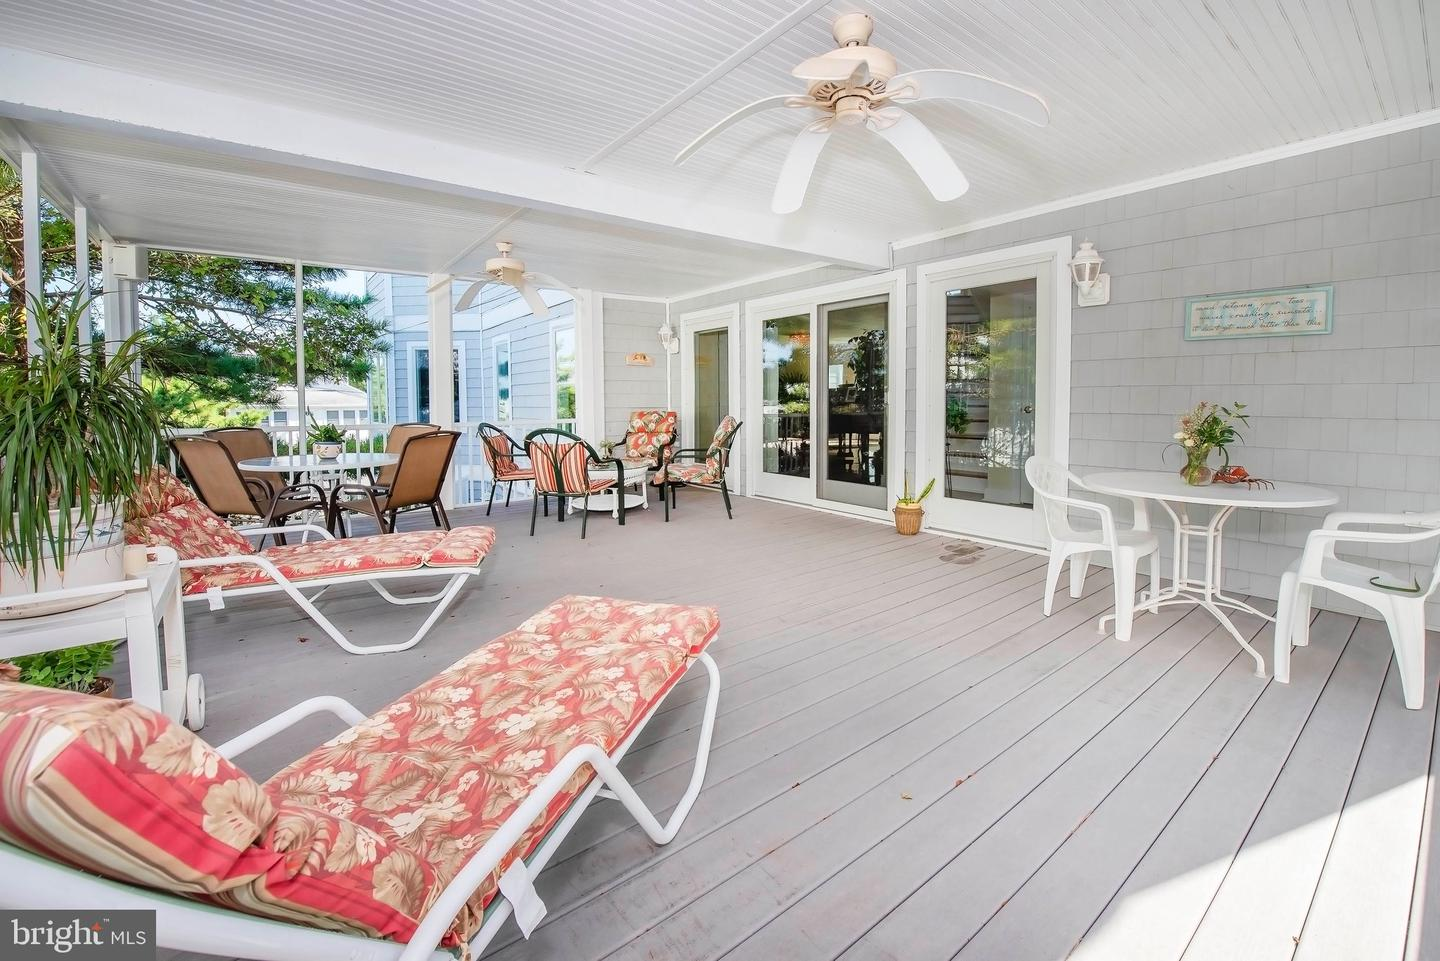 DESU147280-302007865027-2019-08-31-13-42-10 810 Bunting Ave | Fenwick Island, DE Real Estate For Sale | MLS# Desu147280  - Jack Lingo REALTOR